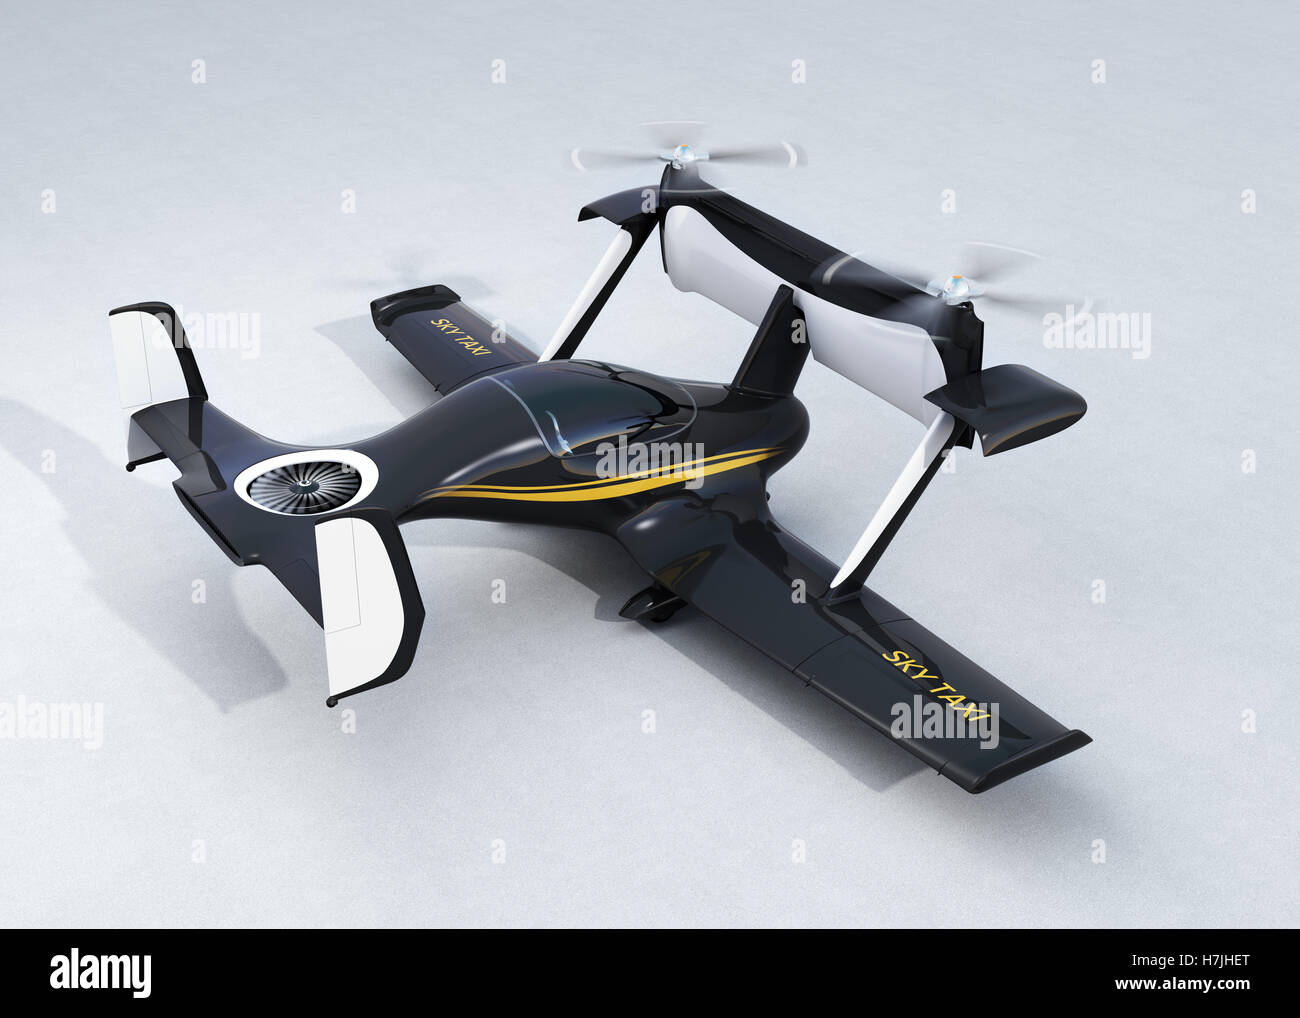 turbine remote control helicopter with Stock Photo Autonomous Flying Drone Taxi Concept 3d Rendering Image Original Design 125184048 on M250 Turboprop in addition Rchelicopternews wordpress together with Rc Helicopter Blade Parts likewise Large Scale Rc Helicopter For Sale besides .